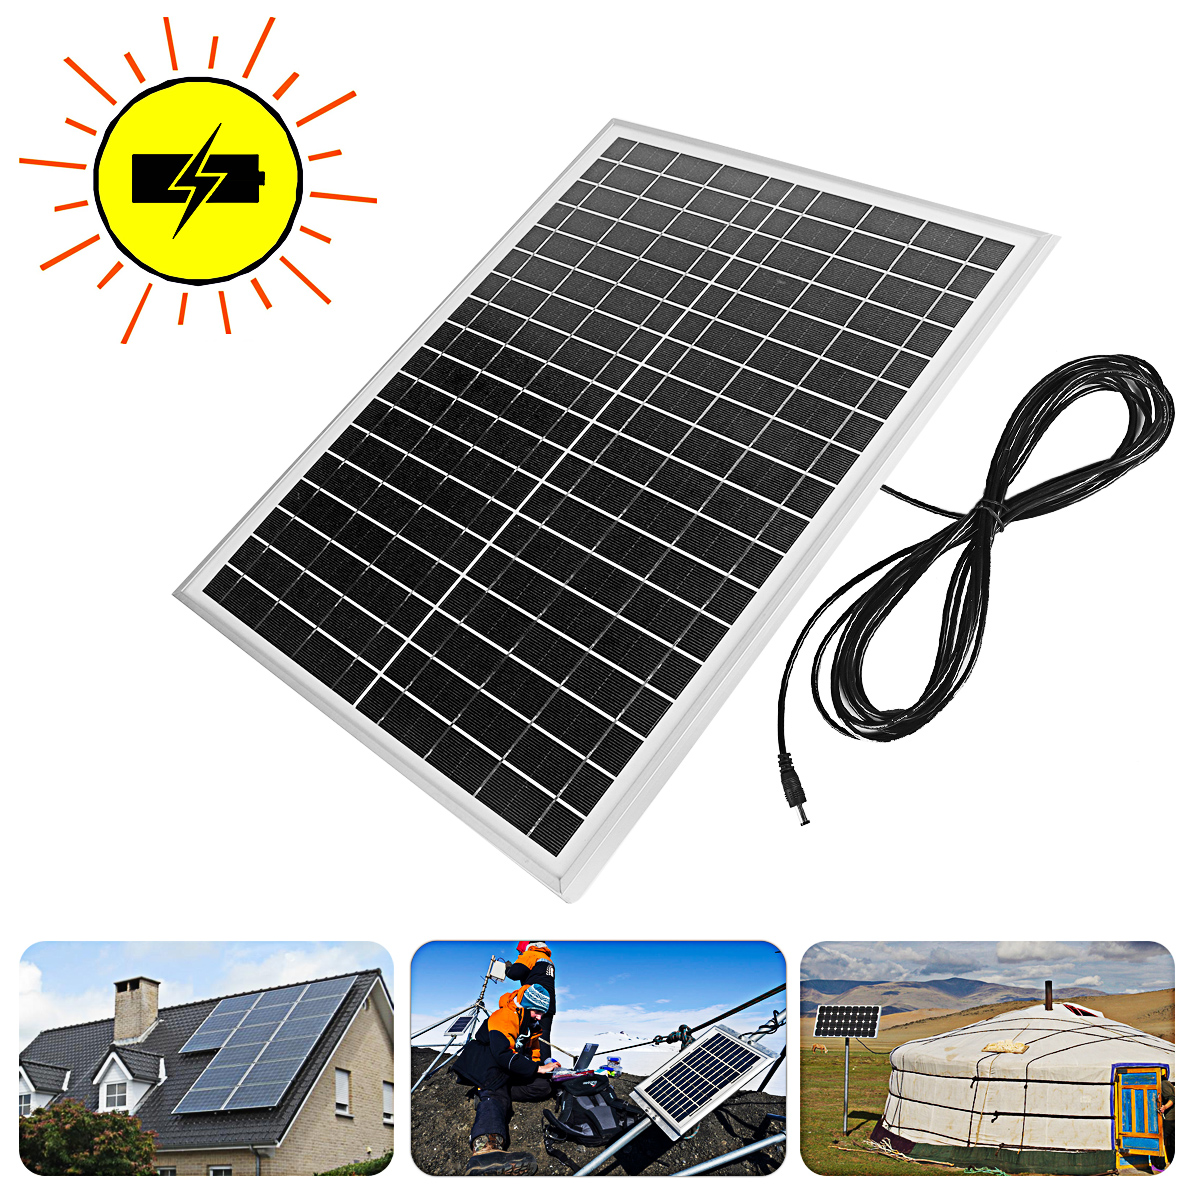 20W 18V Power Storage Generator Solar Panel LED USB Charger DIY Battery Power Charge Module for Home System Outdoor 46*35*2cm solar panel power storage generator system led light usb charger portable home outdoor led lighting system support fm radio